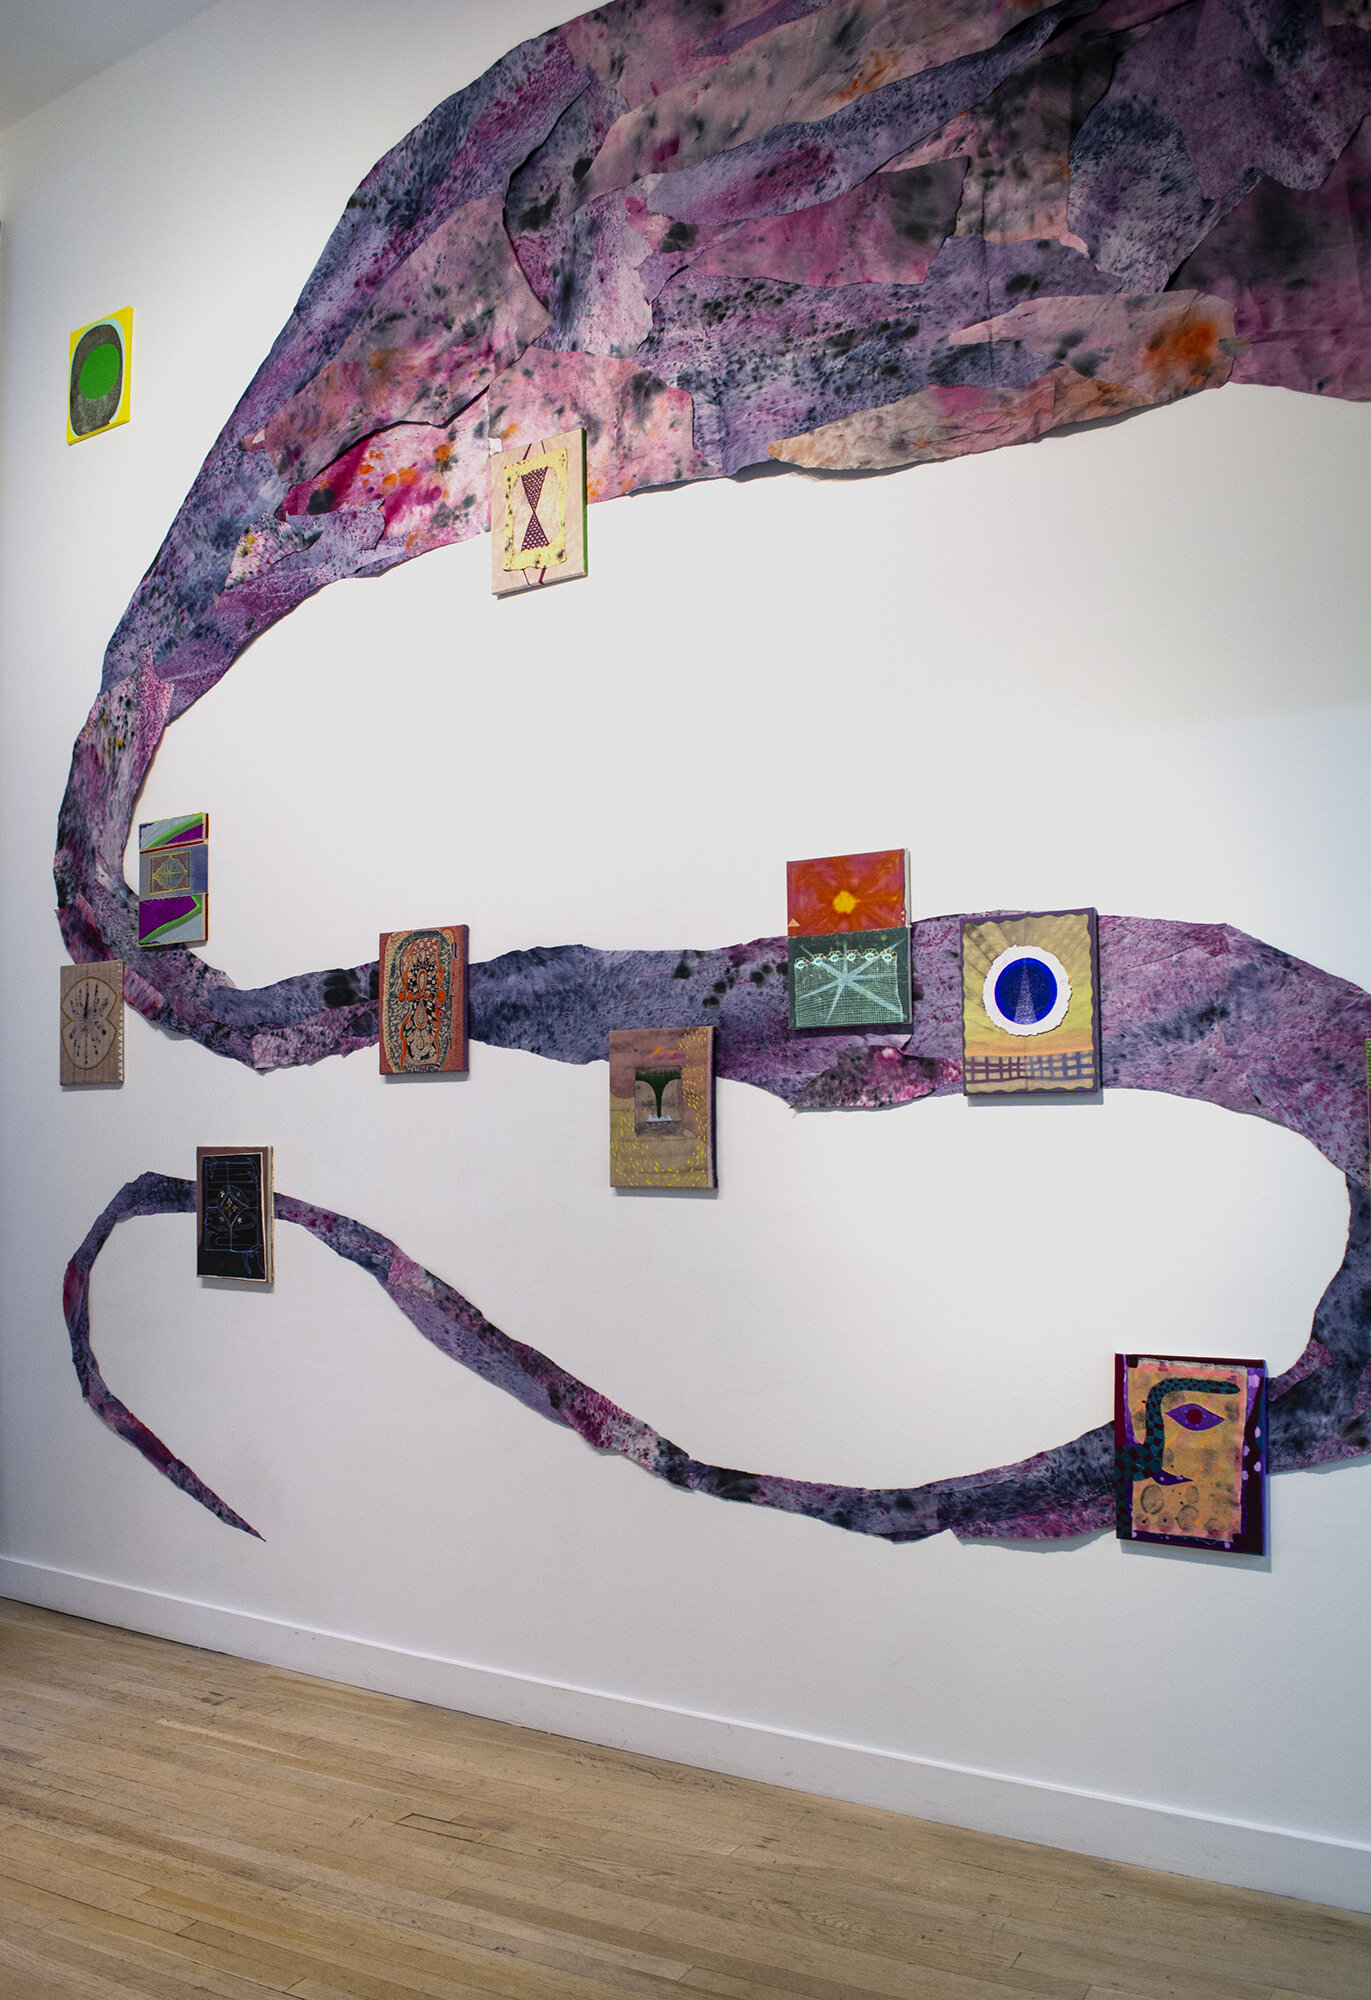 Installation view of Natessa Amin:  Hyphen .  [Image description: A long, undulating trail of purple hand-dyed newsprint curves across the wall. Hanging over it are ten 11 by 14-inch paintings decorated with large blocks of colors, web-like patterns, serpentine shapes, and evil eyes.]